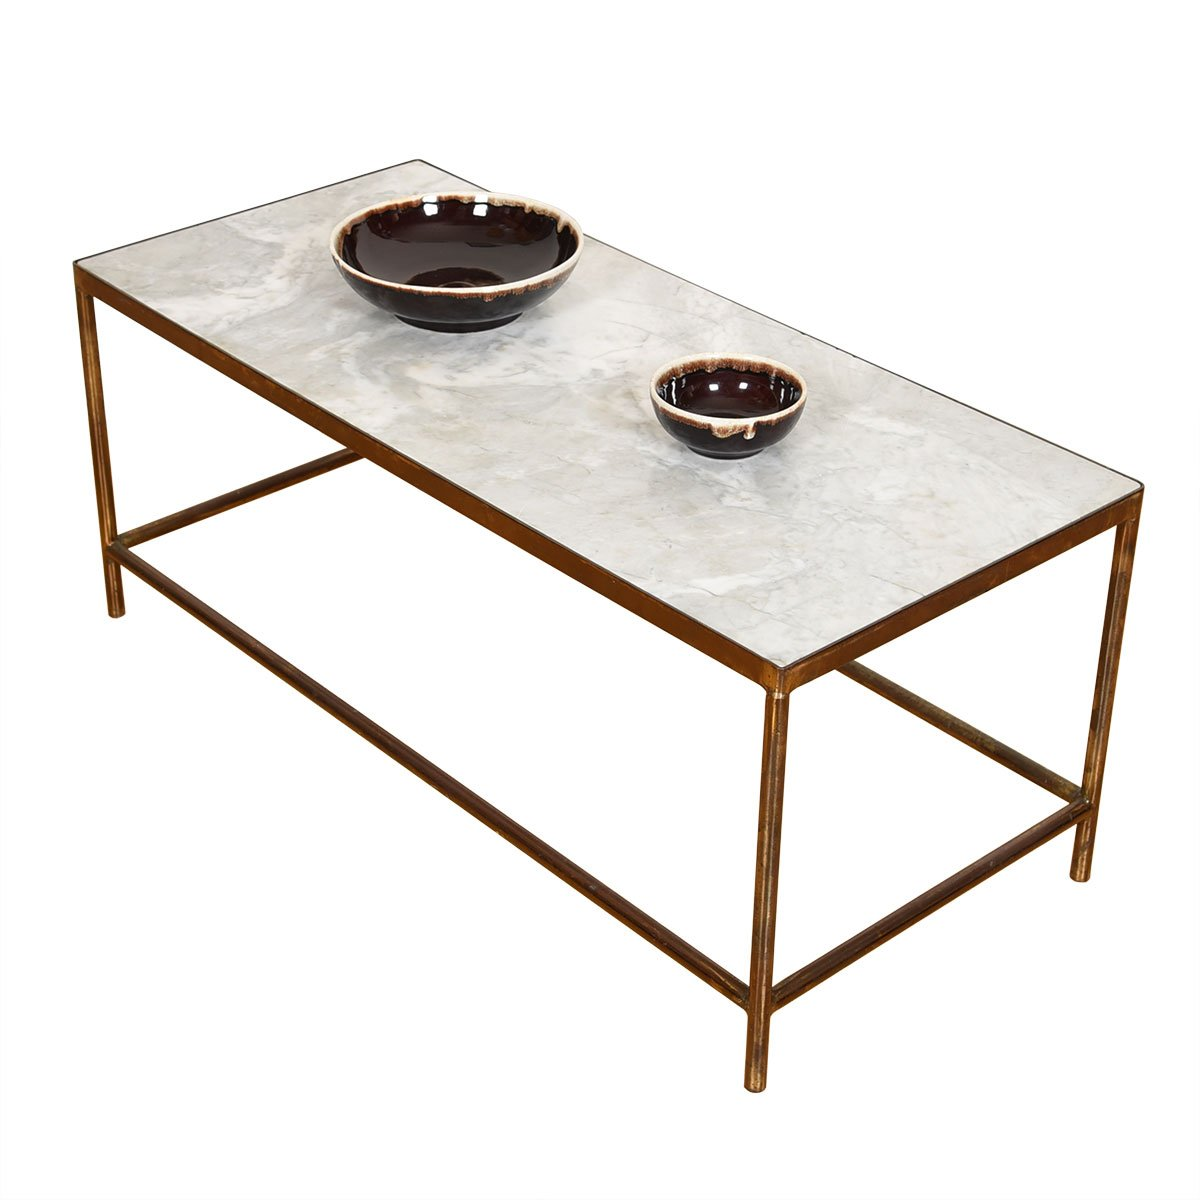 Mid Century American Modernist Brass Coffee Table w/ Marble Inset Top